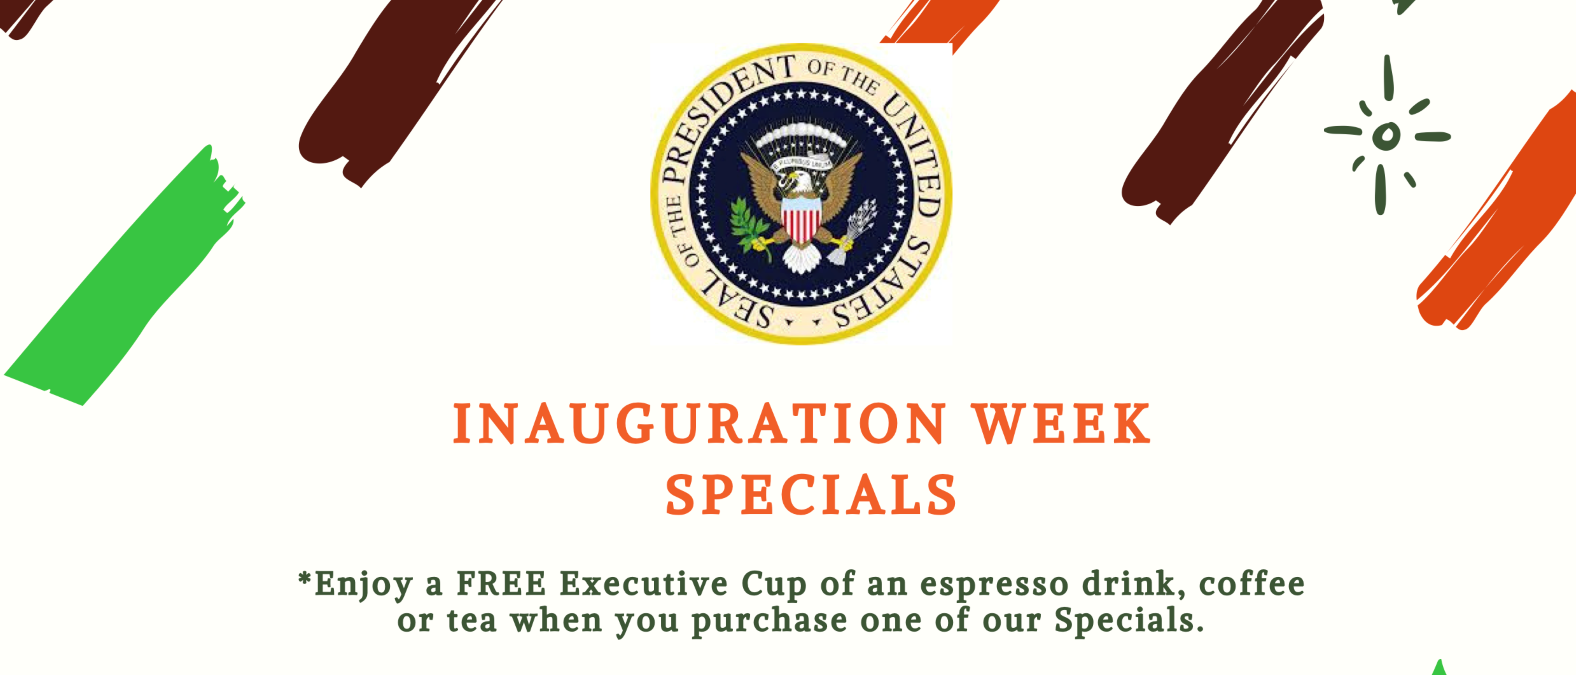 Inauguration Week Specials from Curt's Cafe'